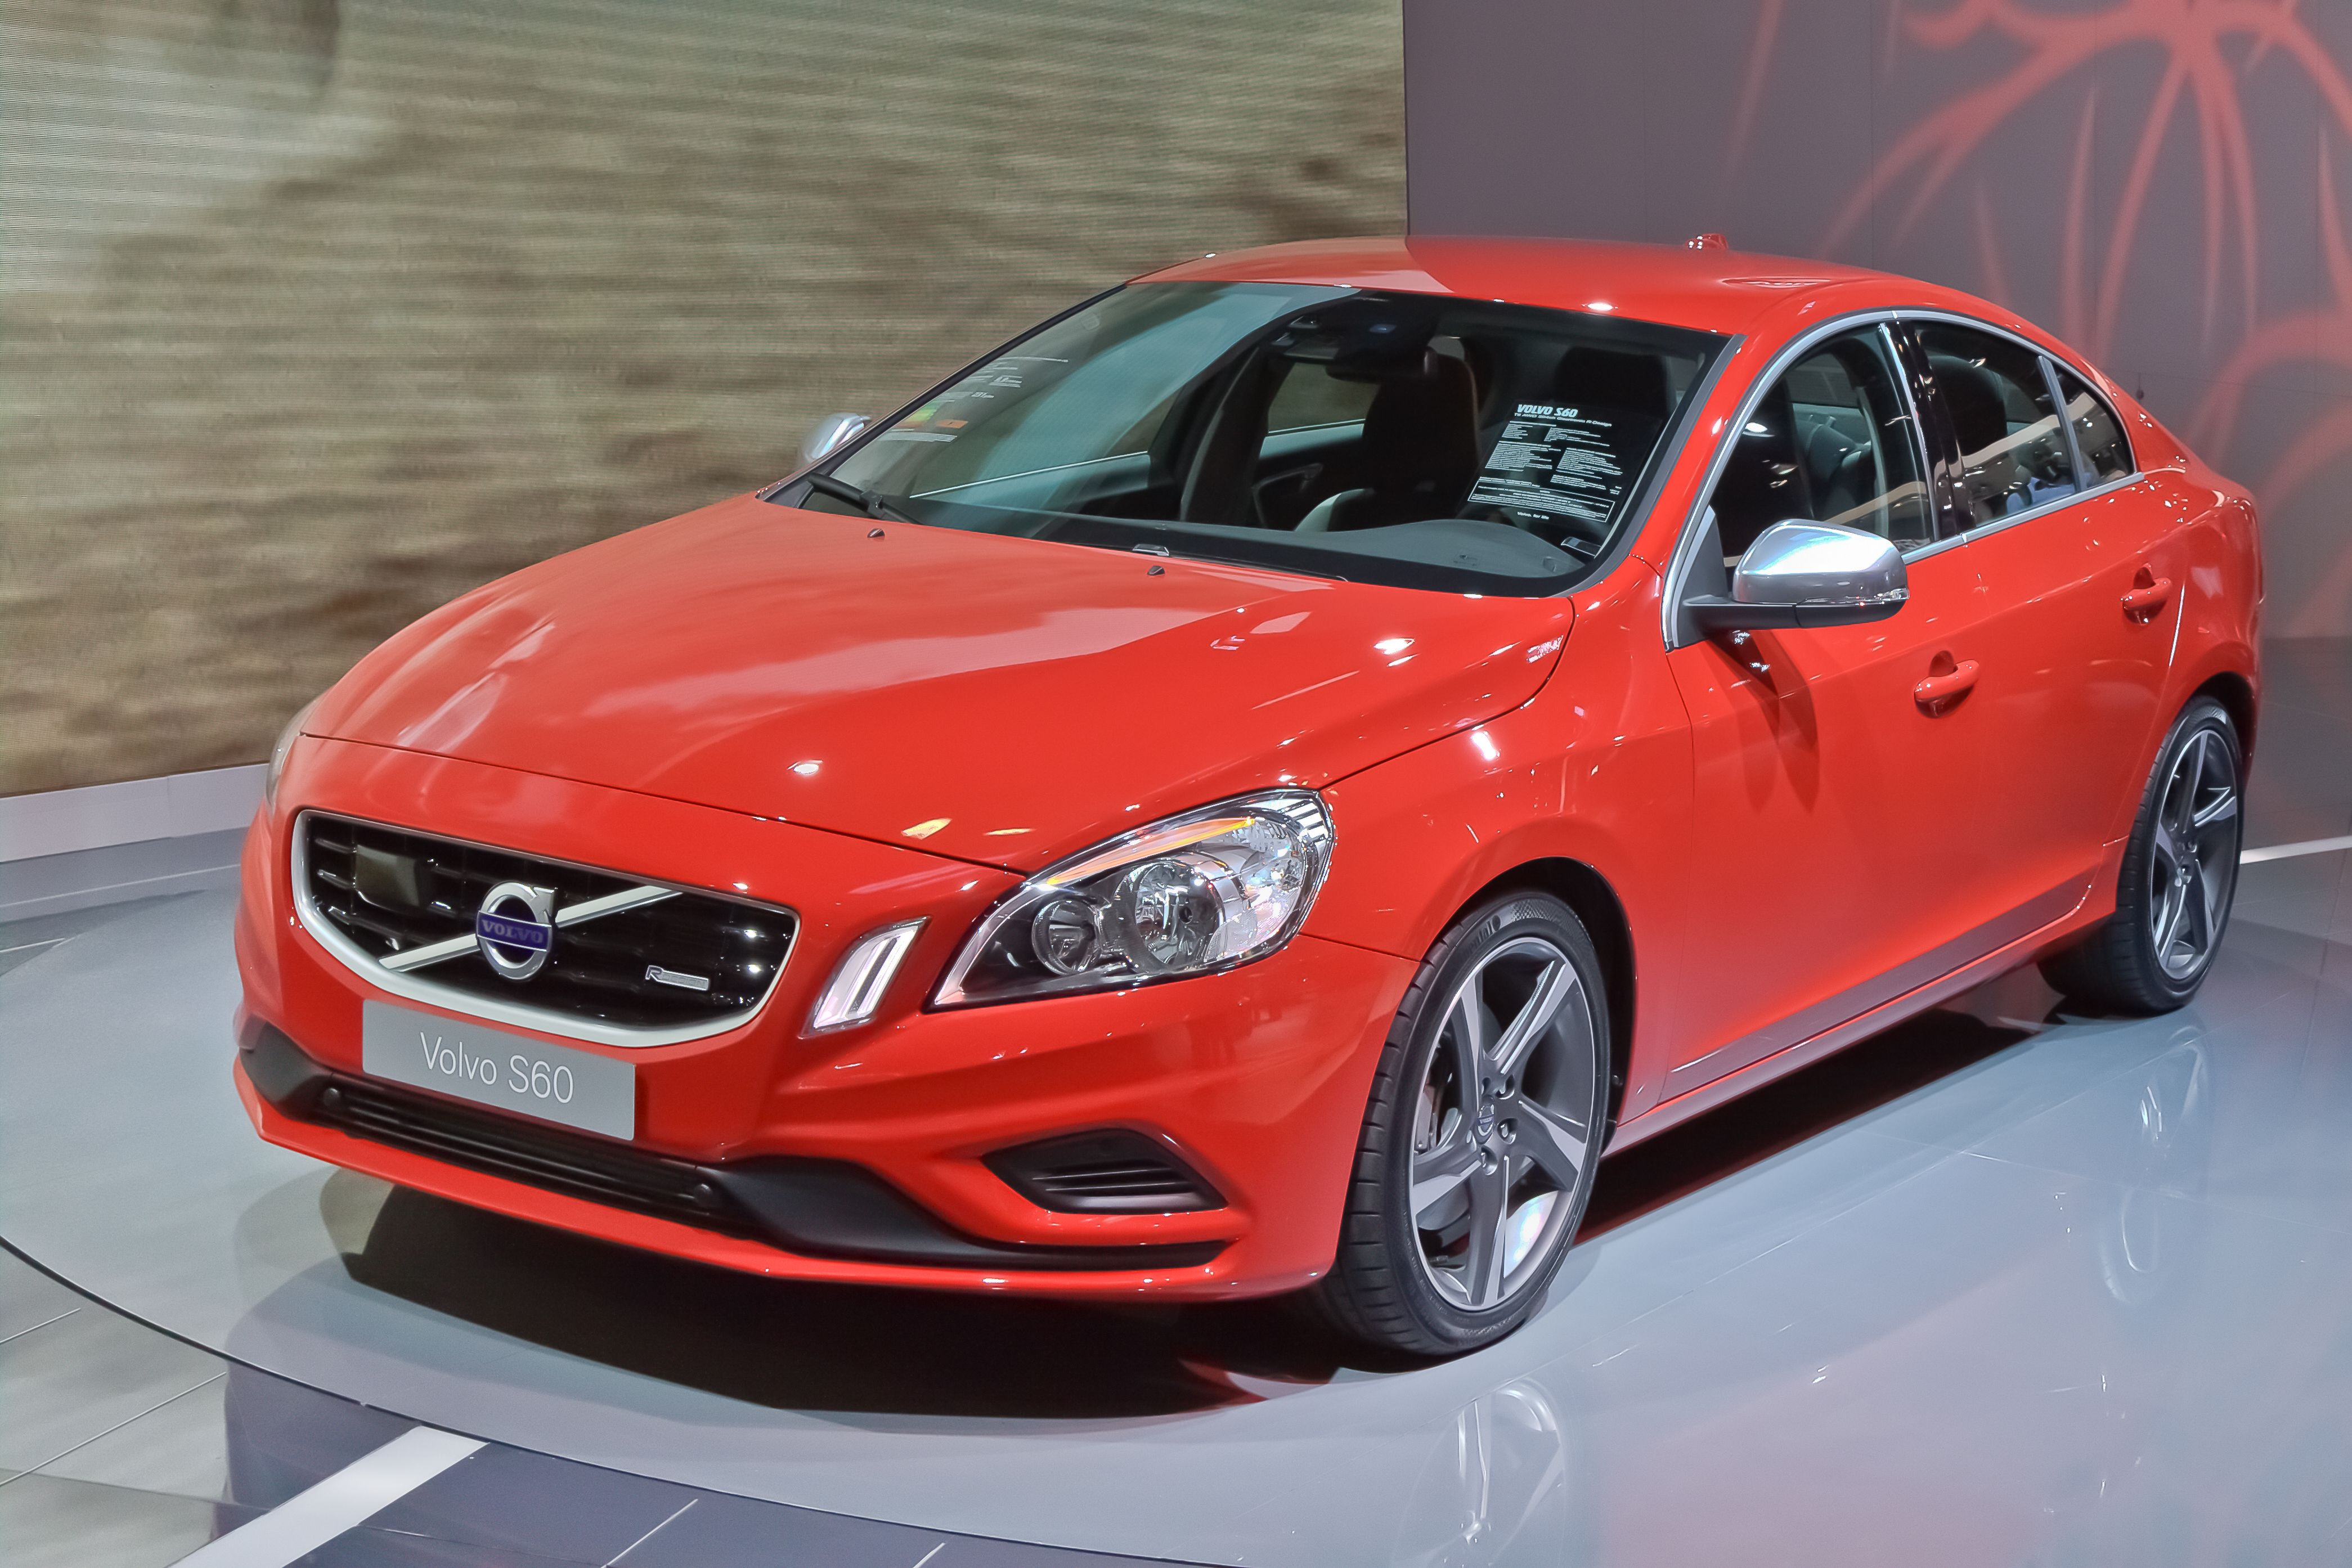 Cheapest Online Prices On Volvo S60 Engines For Sale Online By Recondition Engines Volovo Volvoc60 Reconditionengines Https Volvo S60 Volvo Engines For Sale